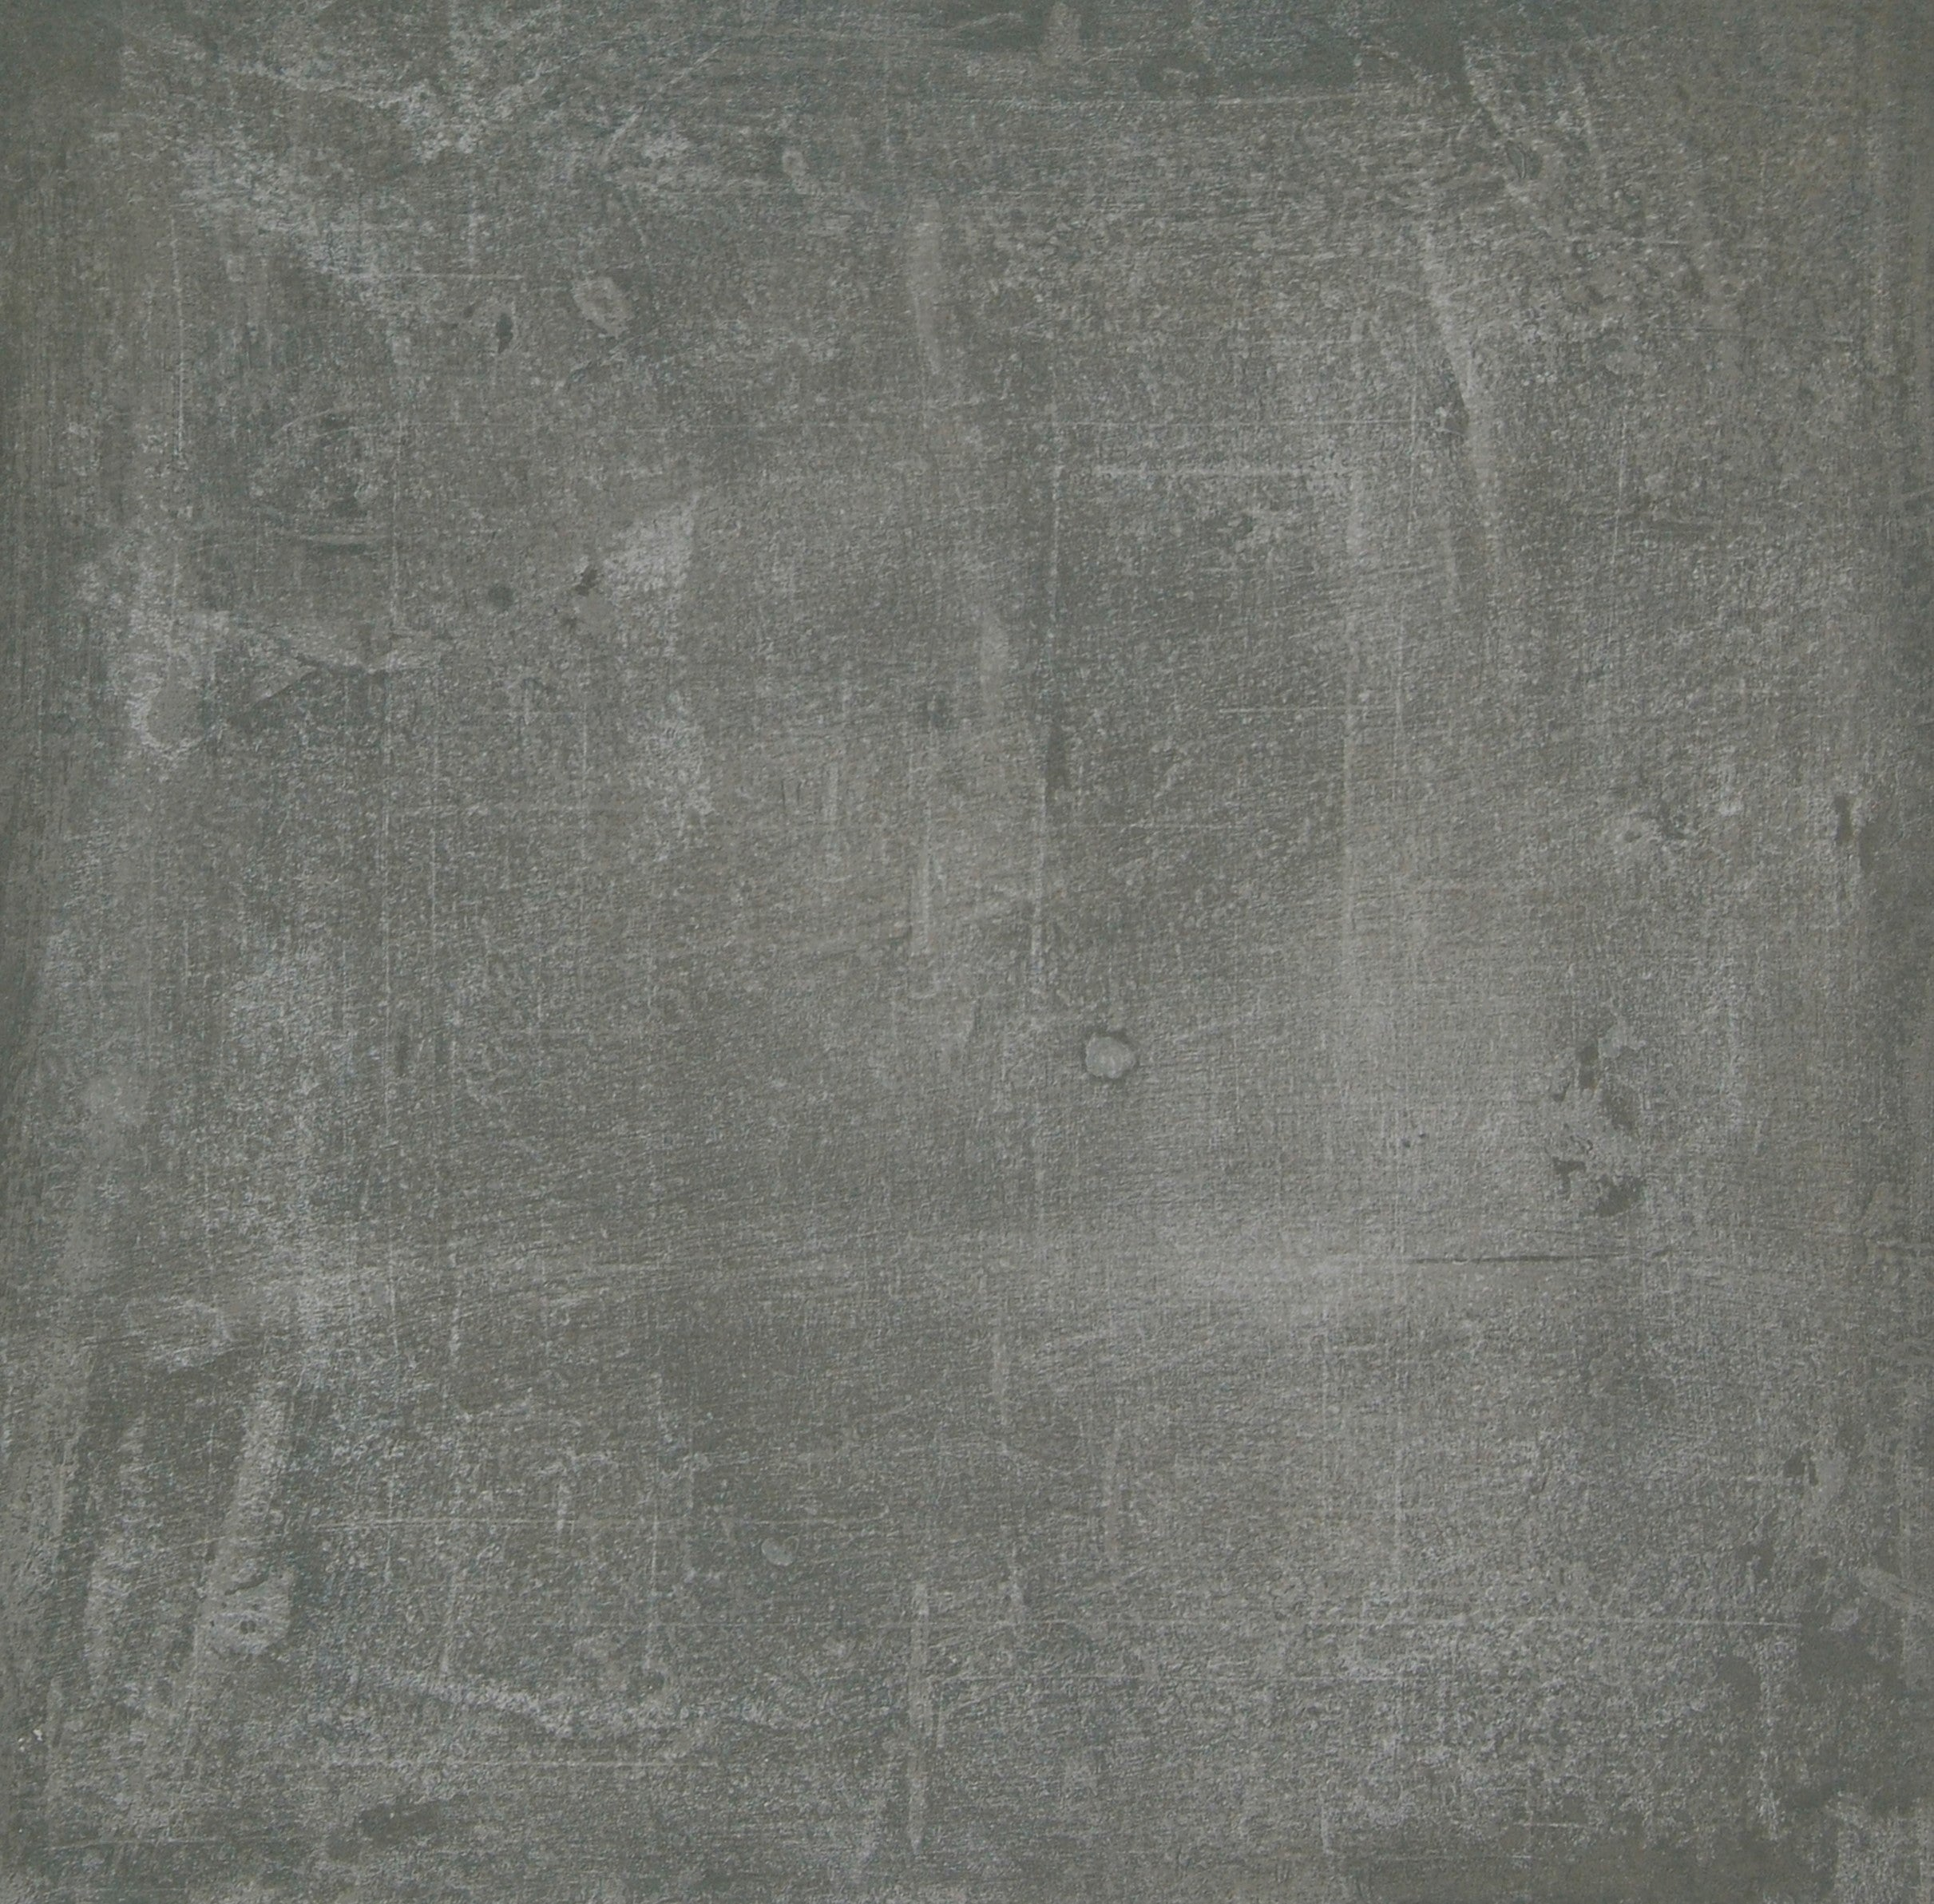 Rak Wall Floor Tiles Per Box Cementina Anthracite 30 X 60cm